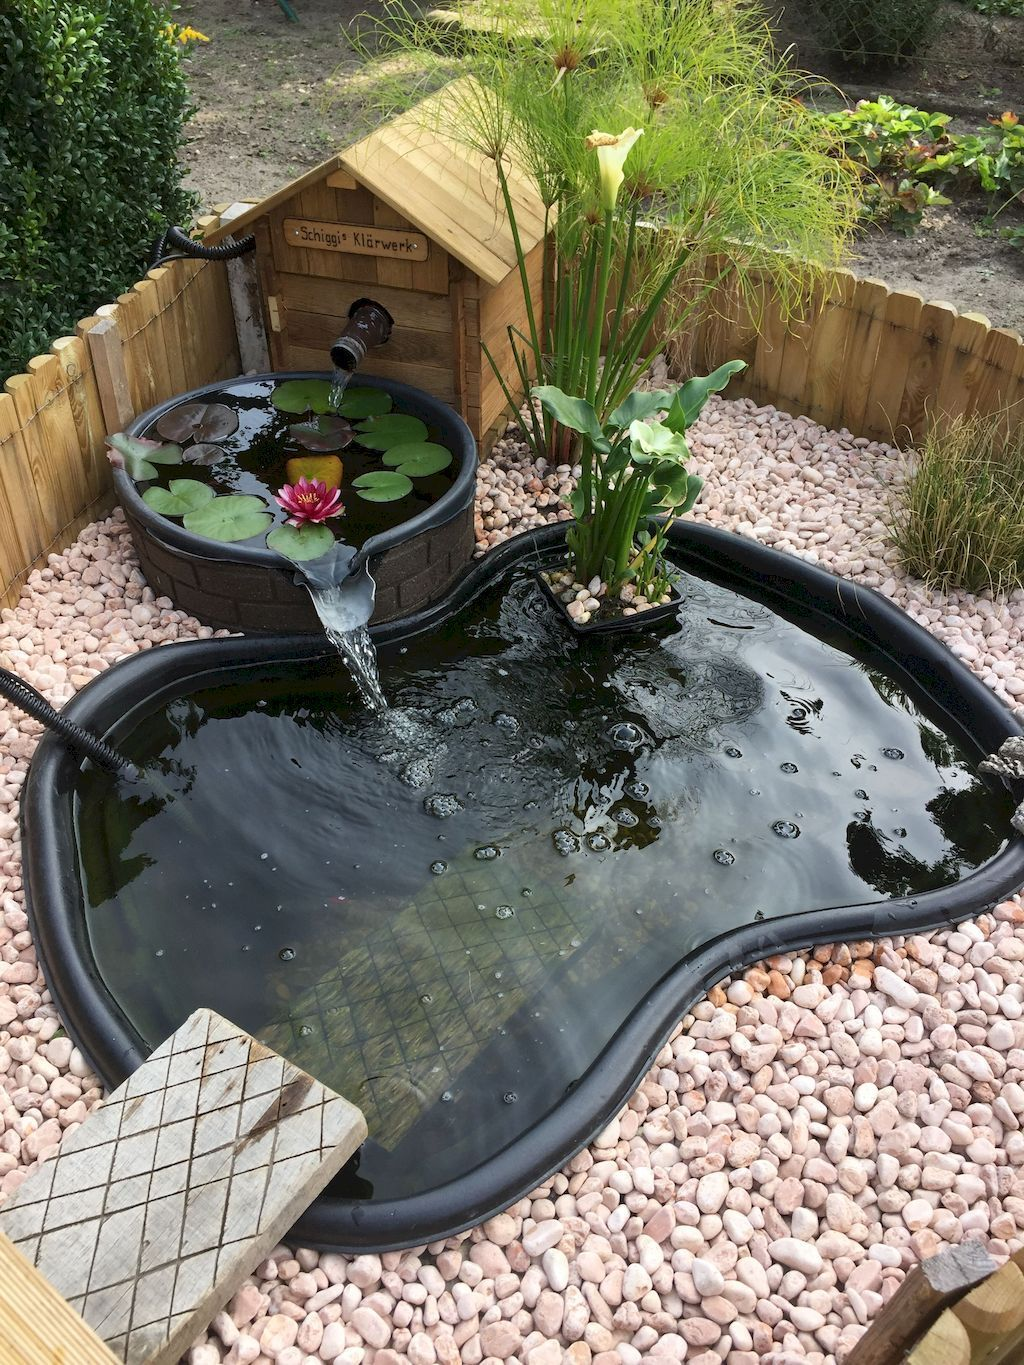 Having a fish pond in the garden is indeed very pleasant ...